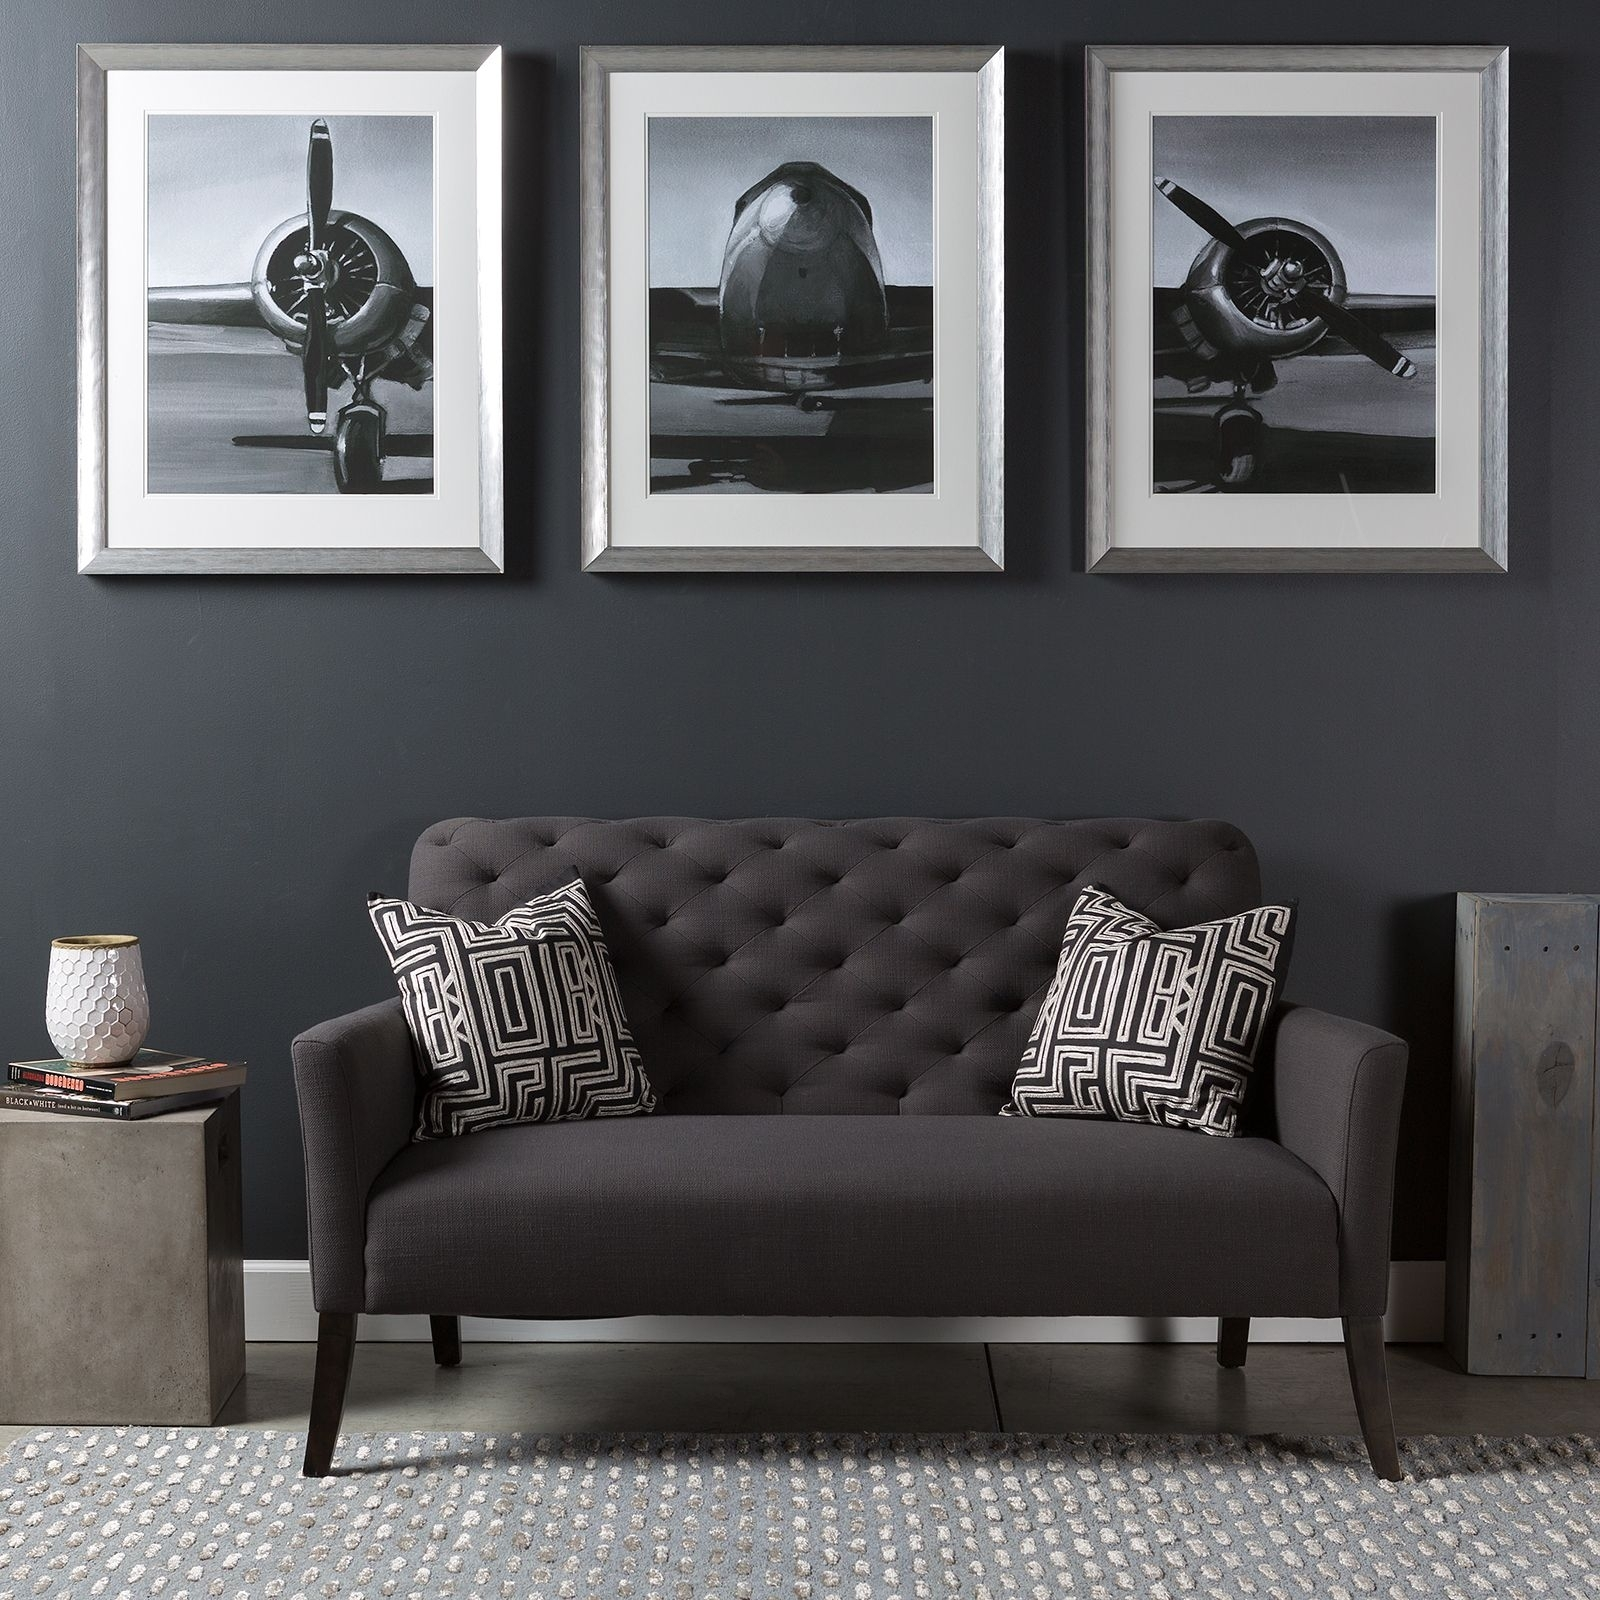 Triptych Wall Art Piece With A Modern Industrial Flare; A Series Of Pertaining To Latest Airplane Wall Art (View 18 of 20)